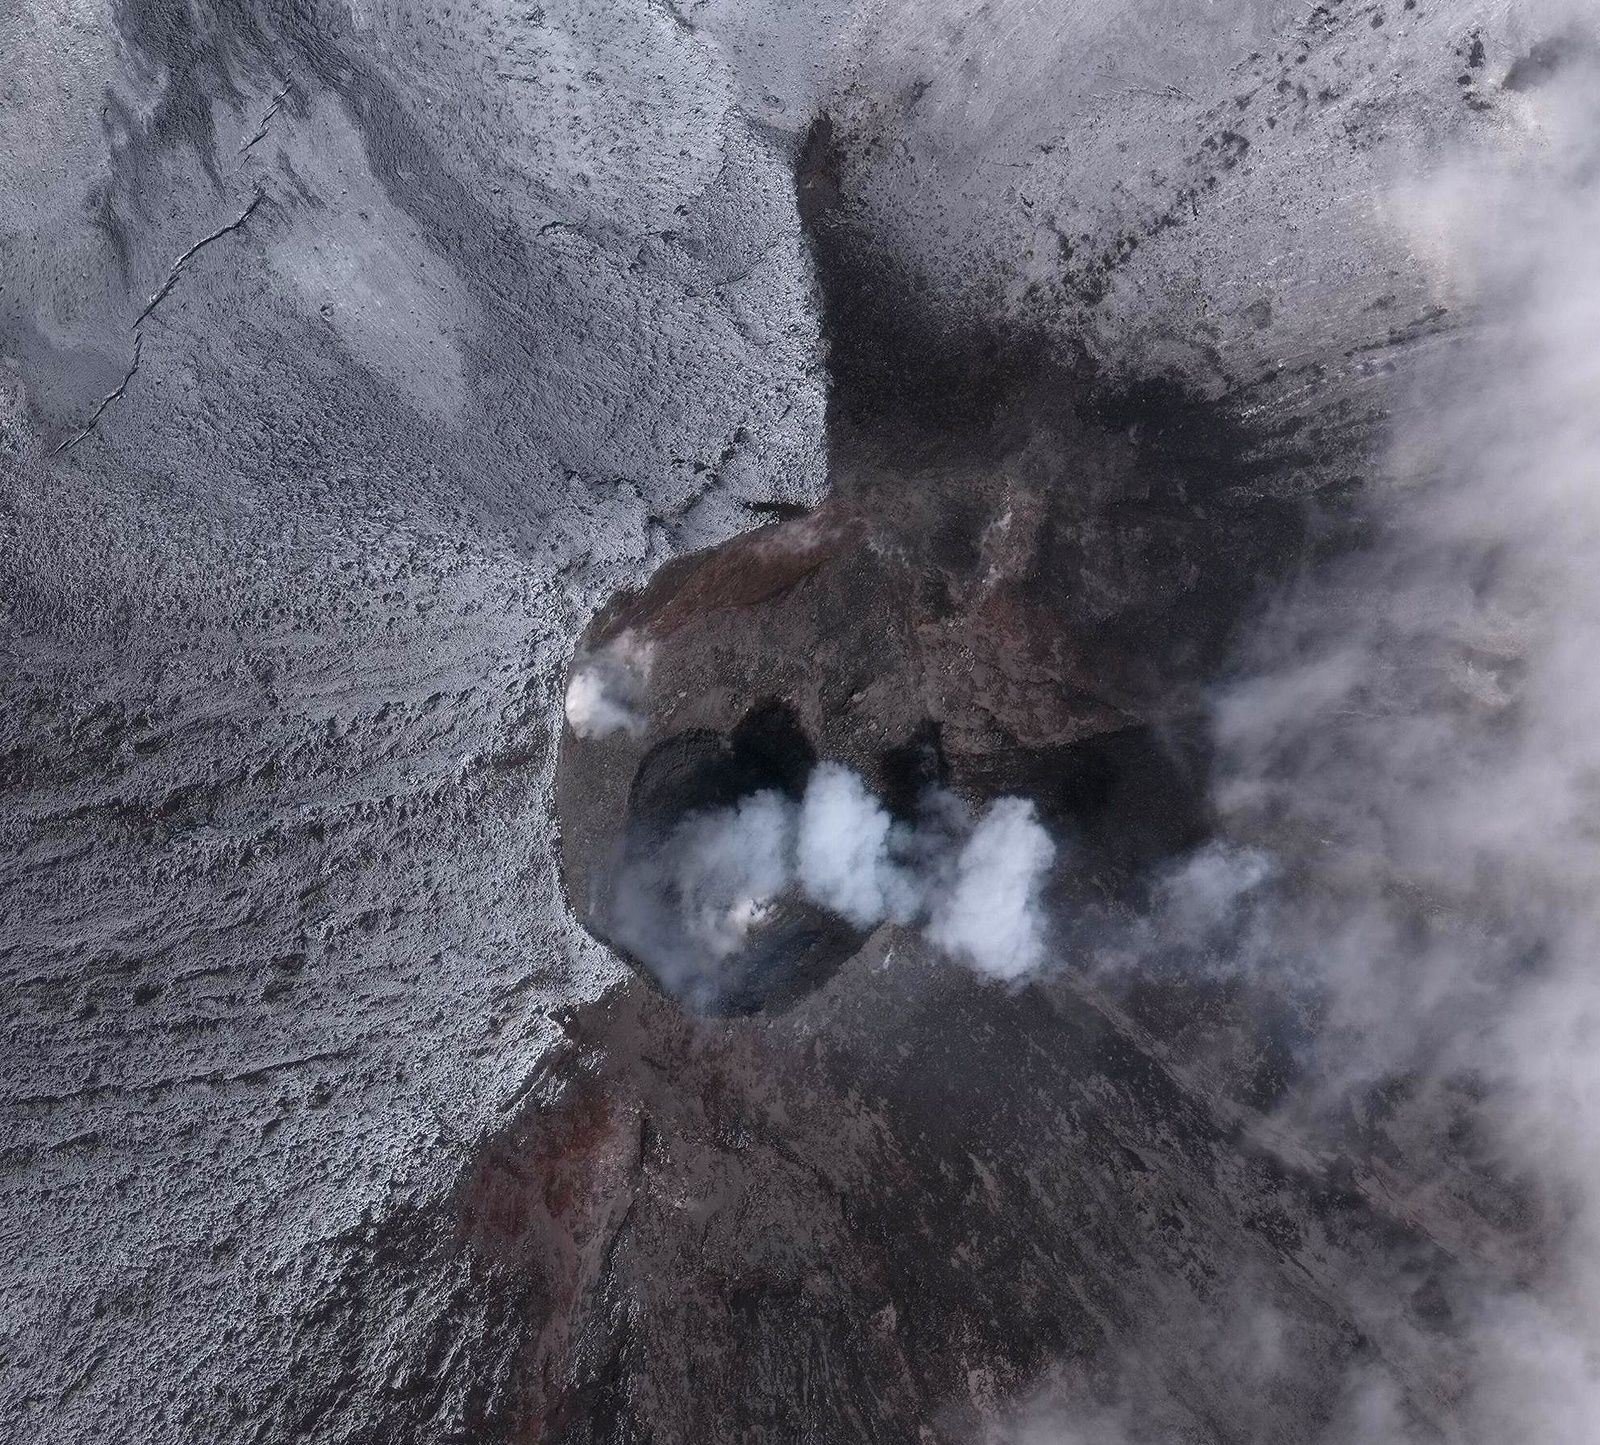 Cleveland - circular lava flow 8 meters in diameter, extruded in late June 2018, and minor steam emissions - image Worldview-3 satellite via Dave Schneider / AVO